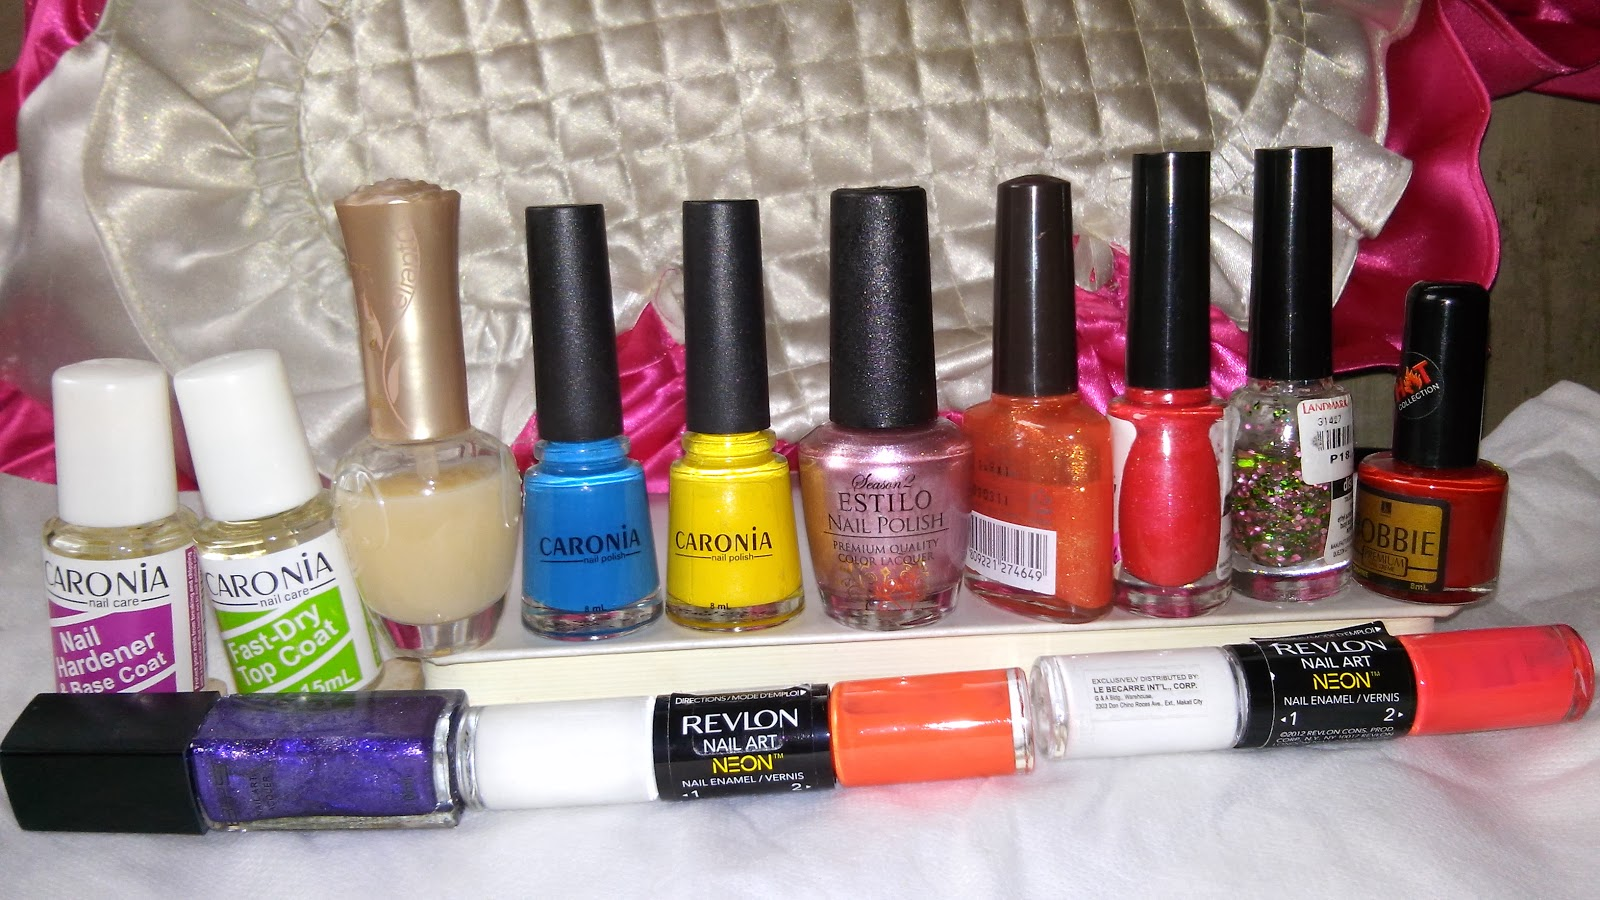 philippine nail polish brands